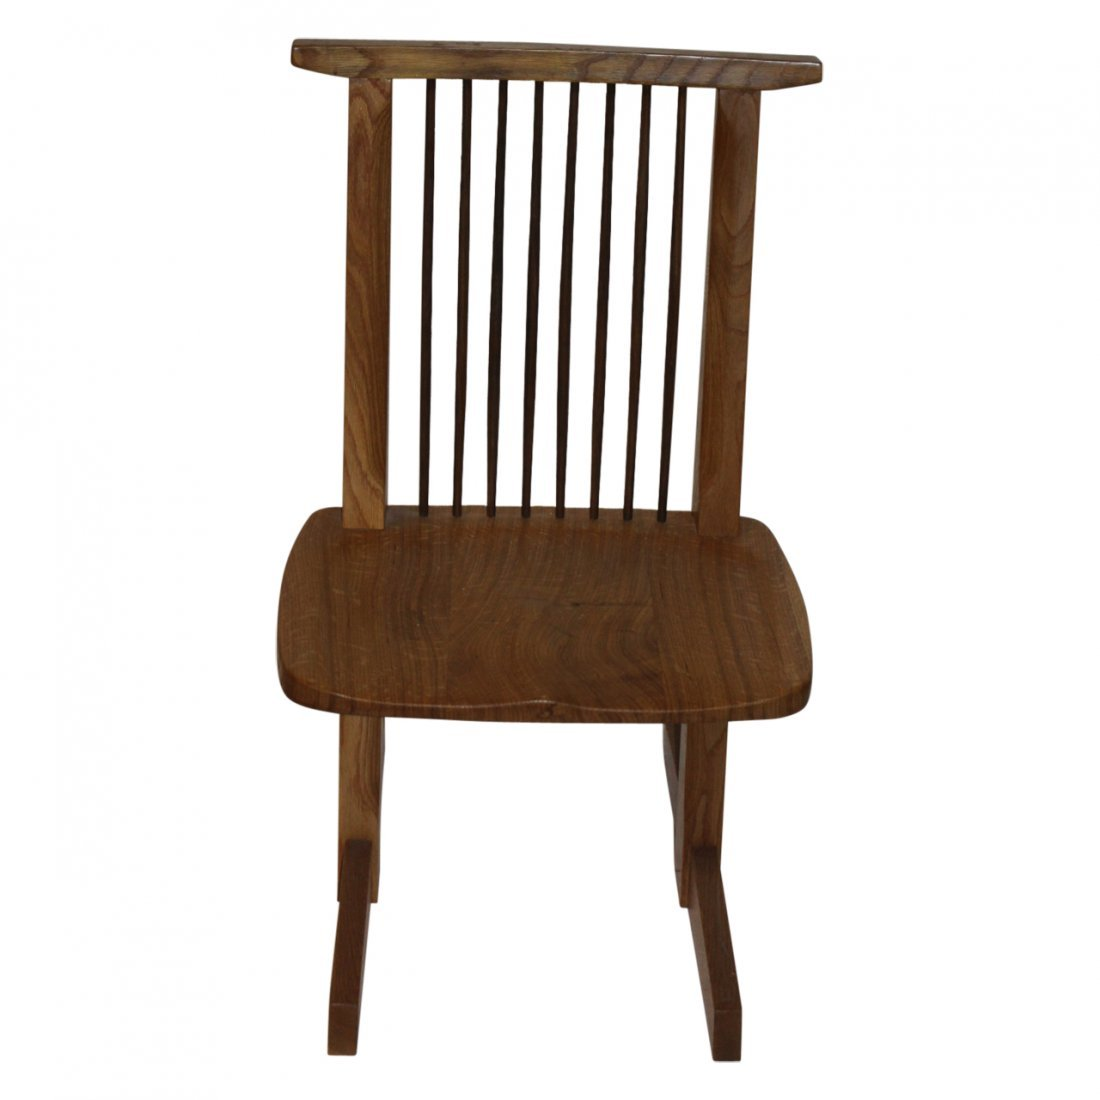 MCM Style Chair in the Manner of Nakishima